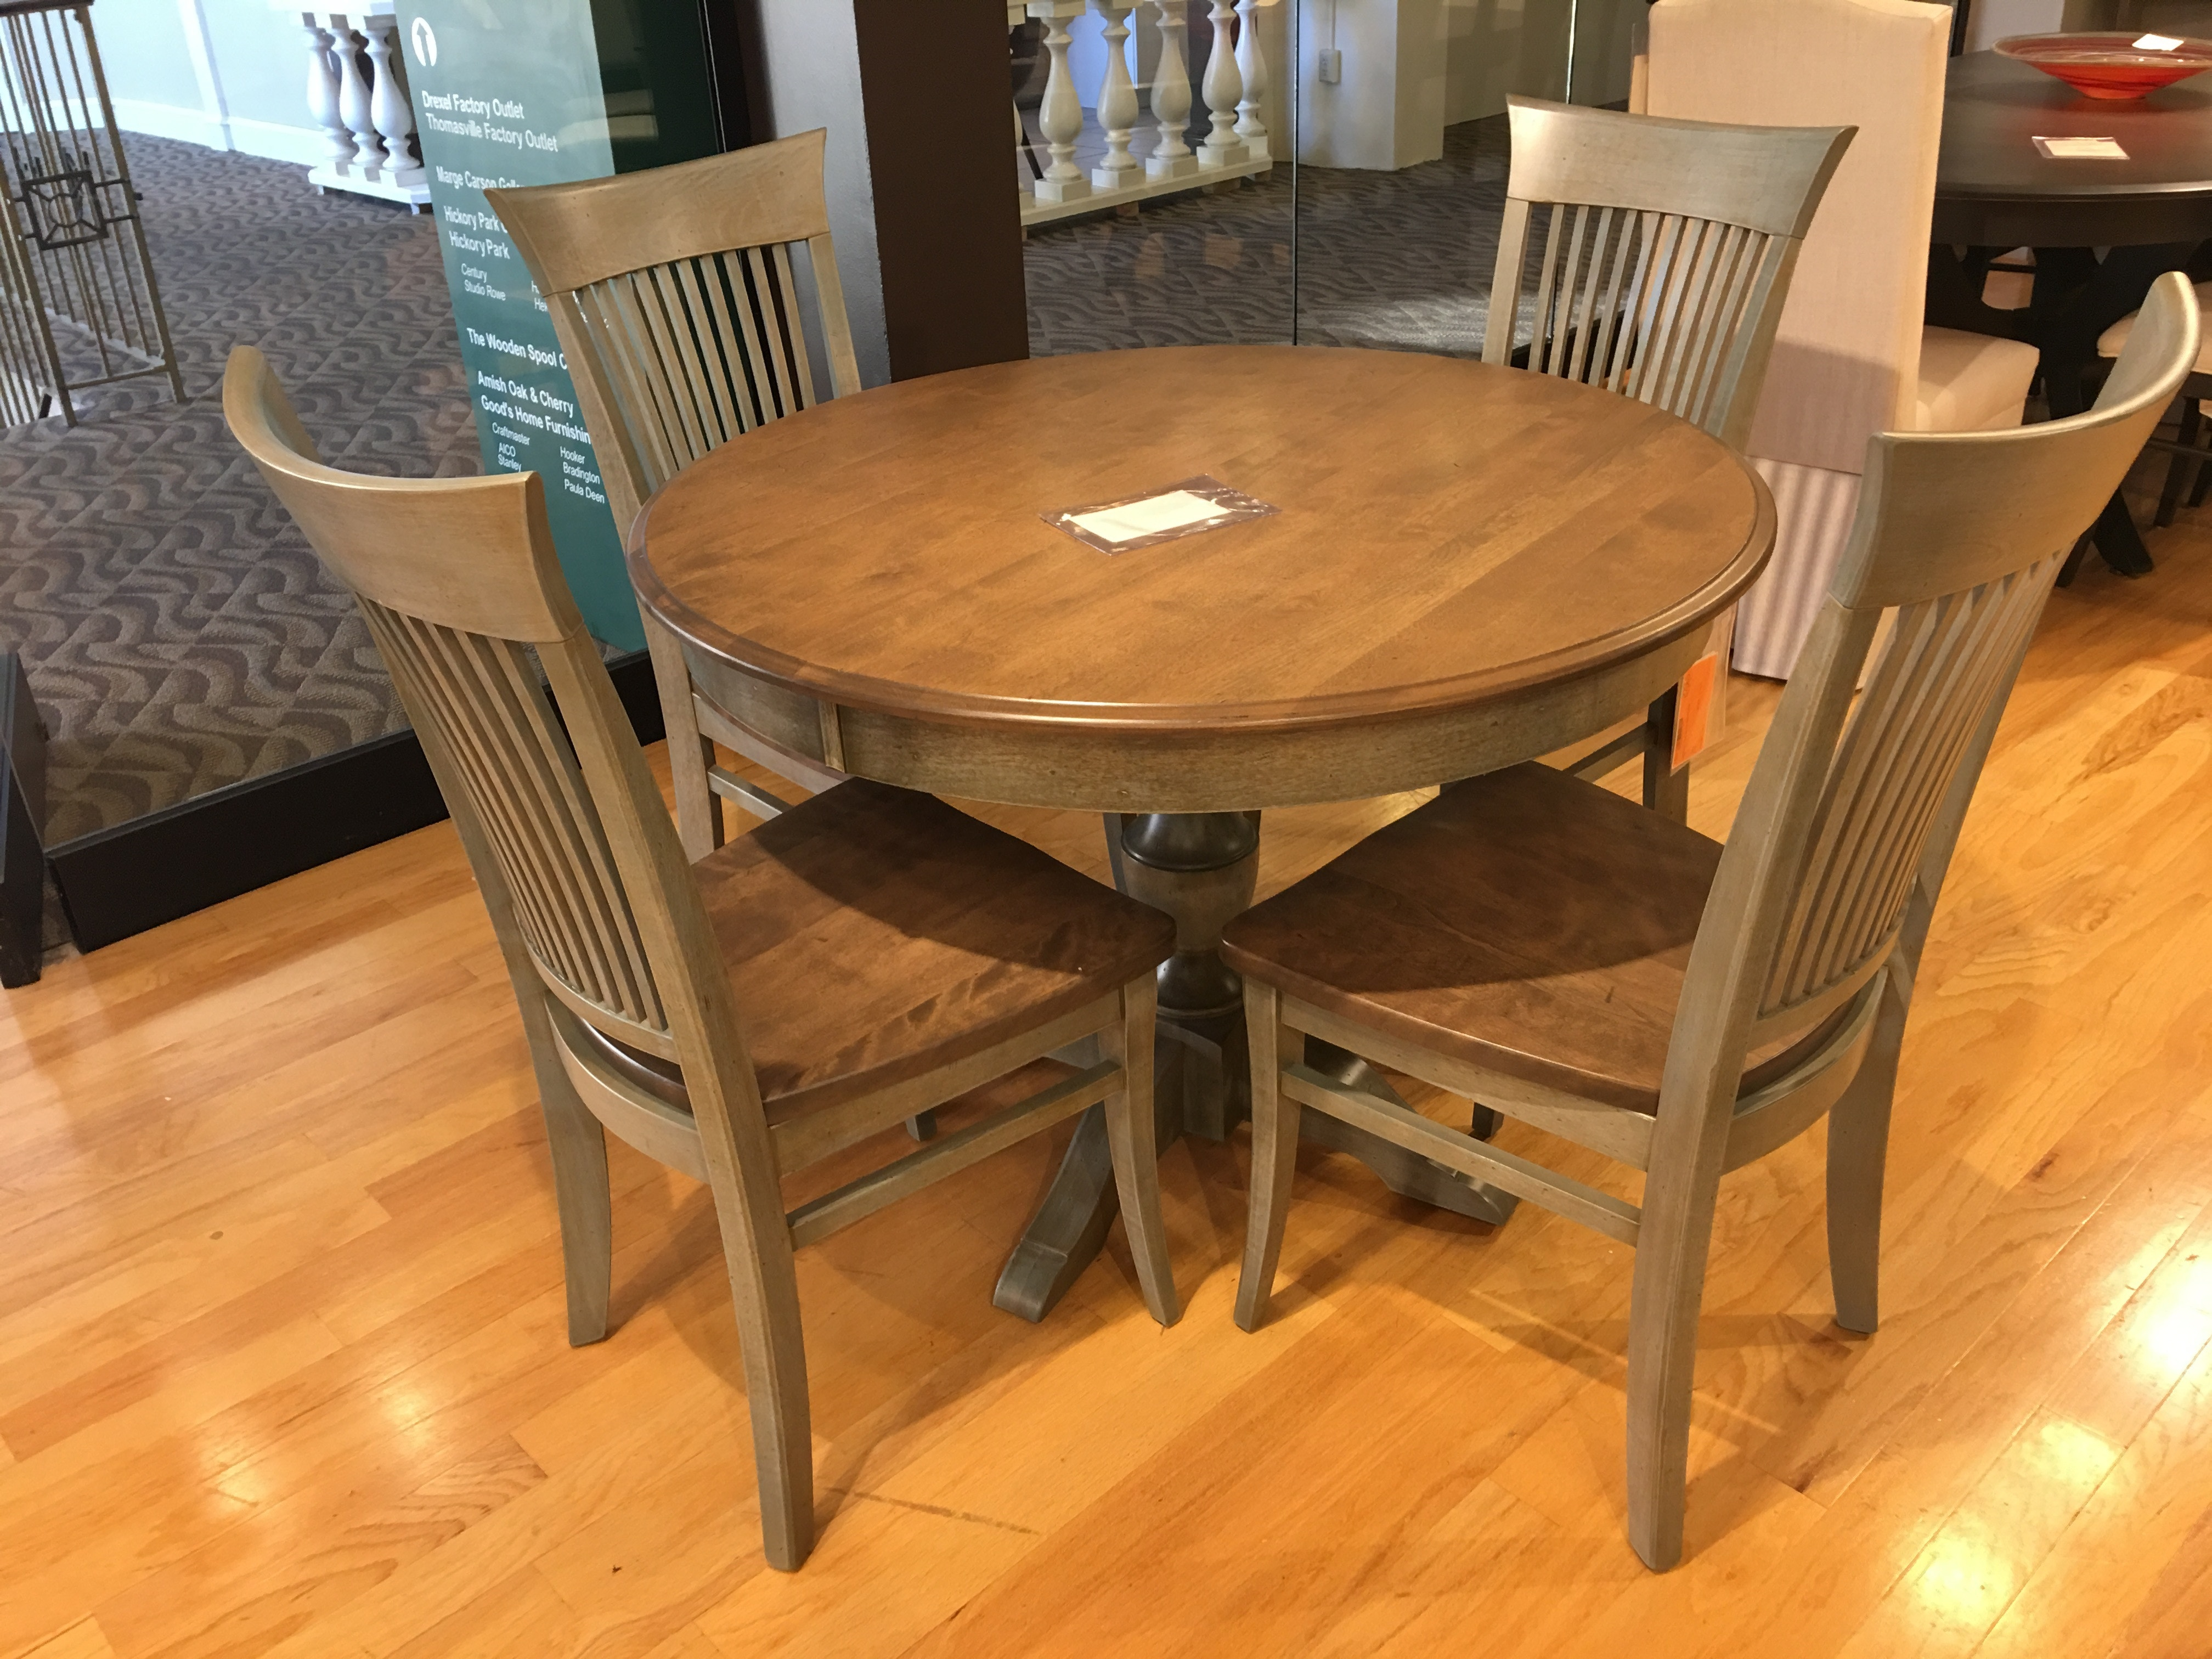 hickory dining table set. hickory park furniture outlet dining table and chairs by canadel trn-0-4242 set l